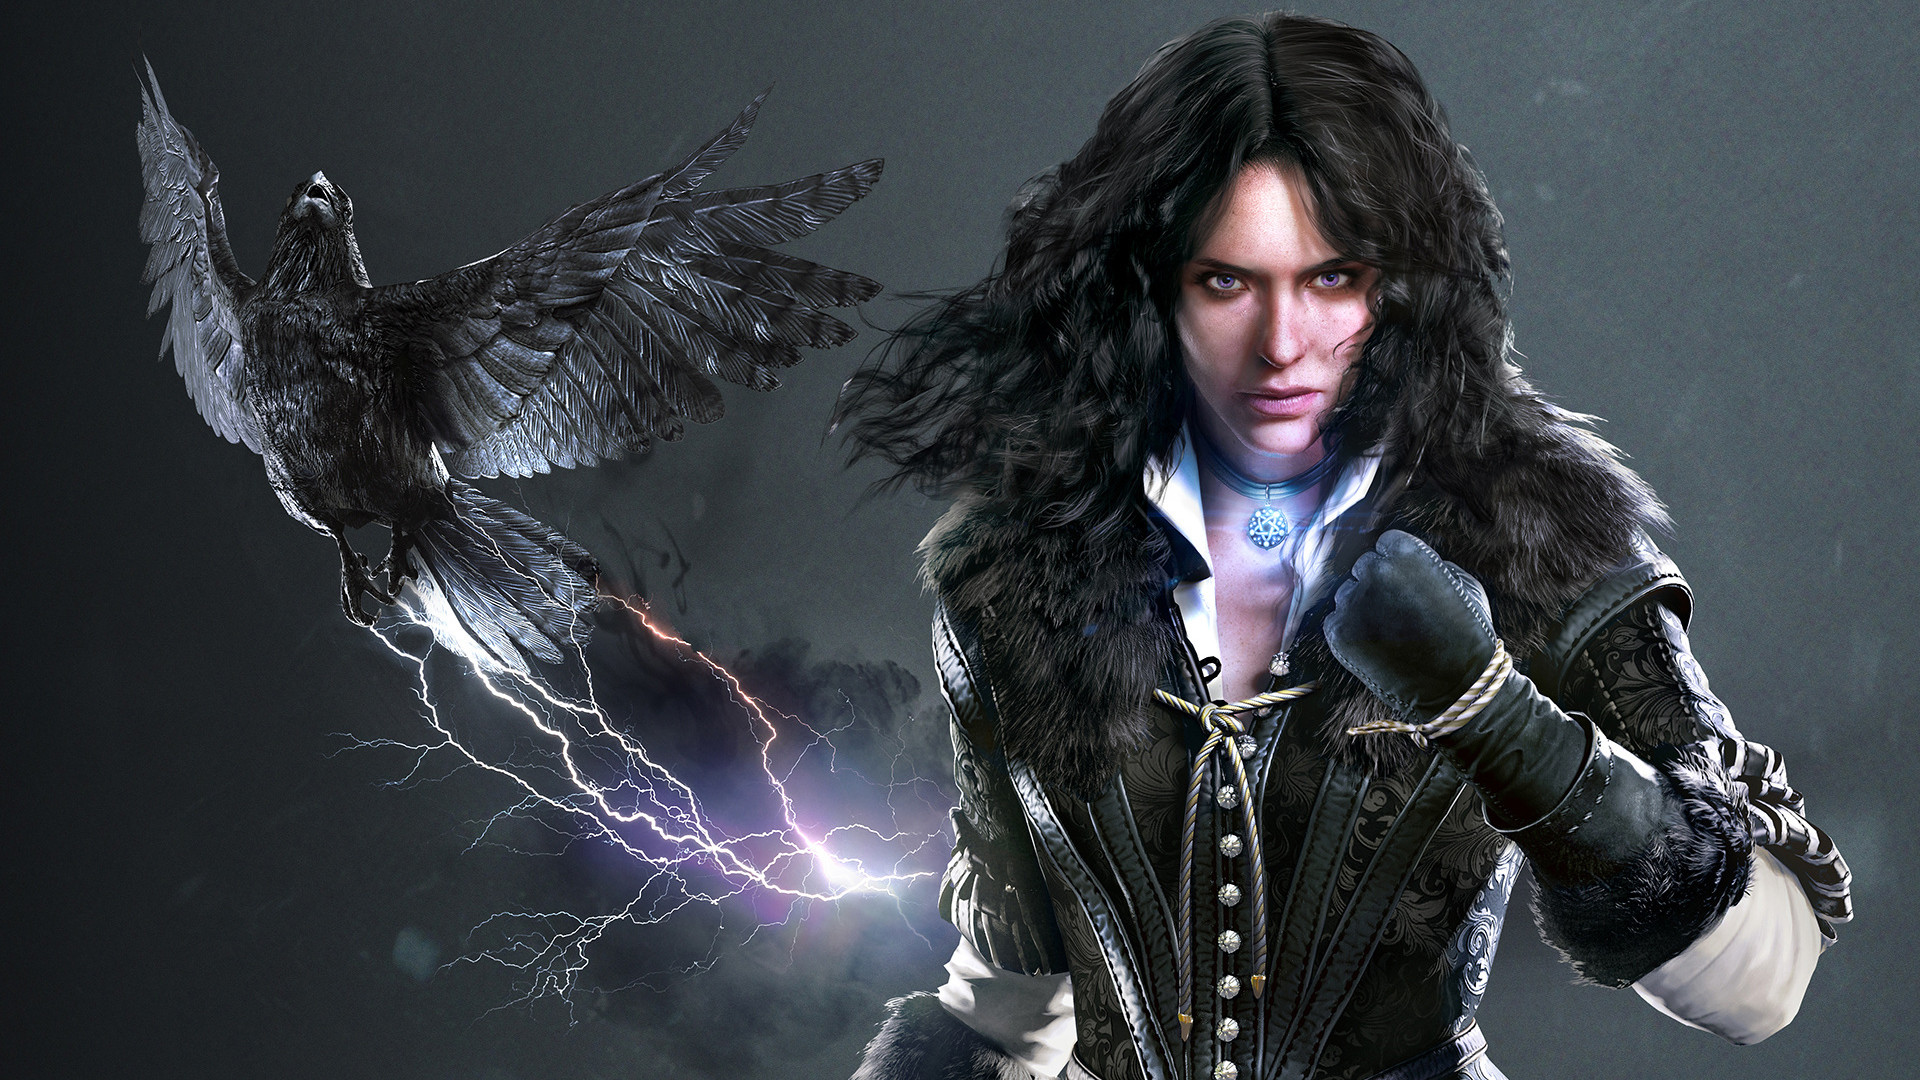 Witcher 3 Yennefer Wallpaper Posted By Zoey Simpson